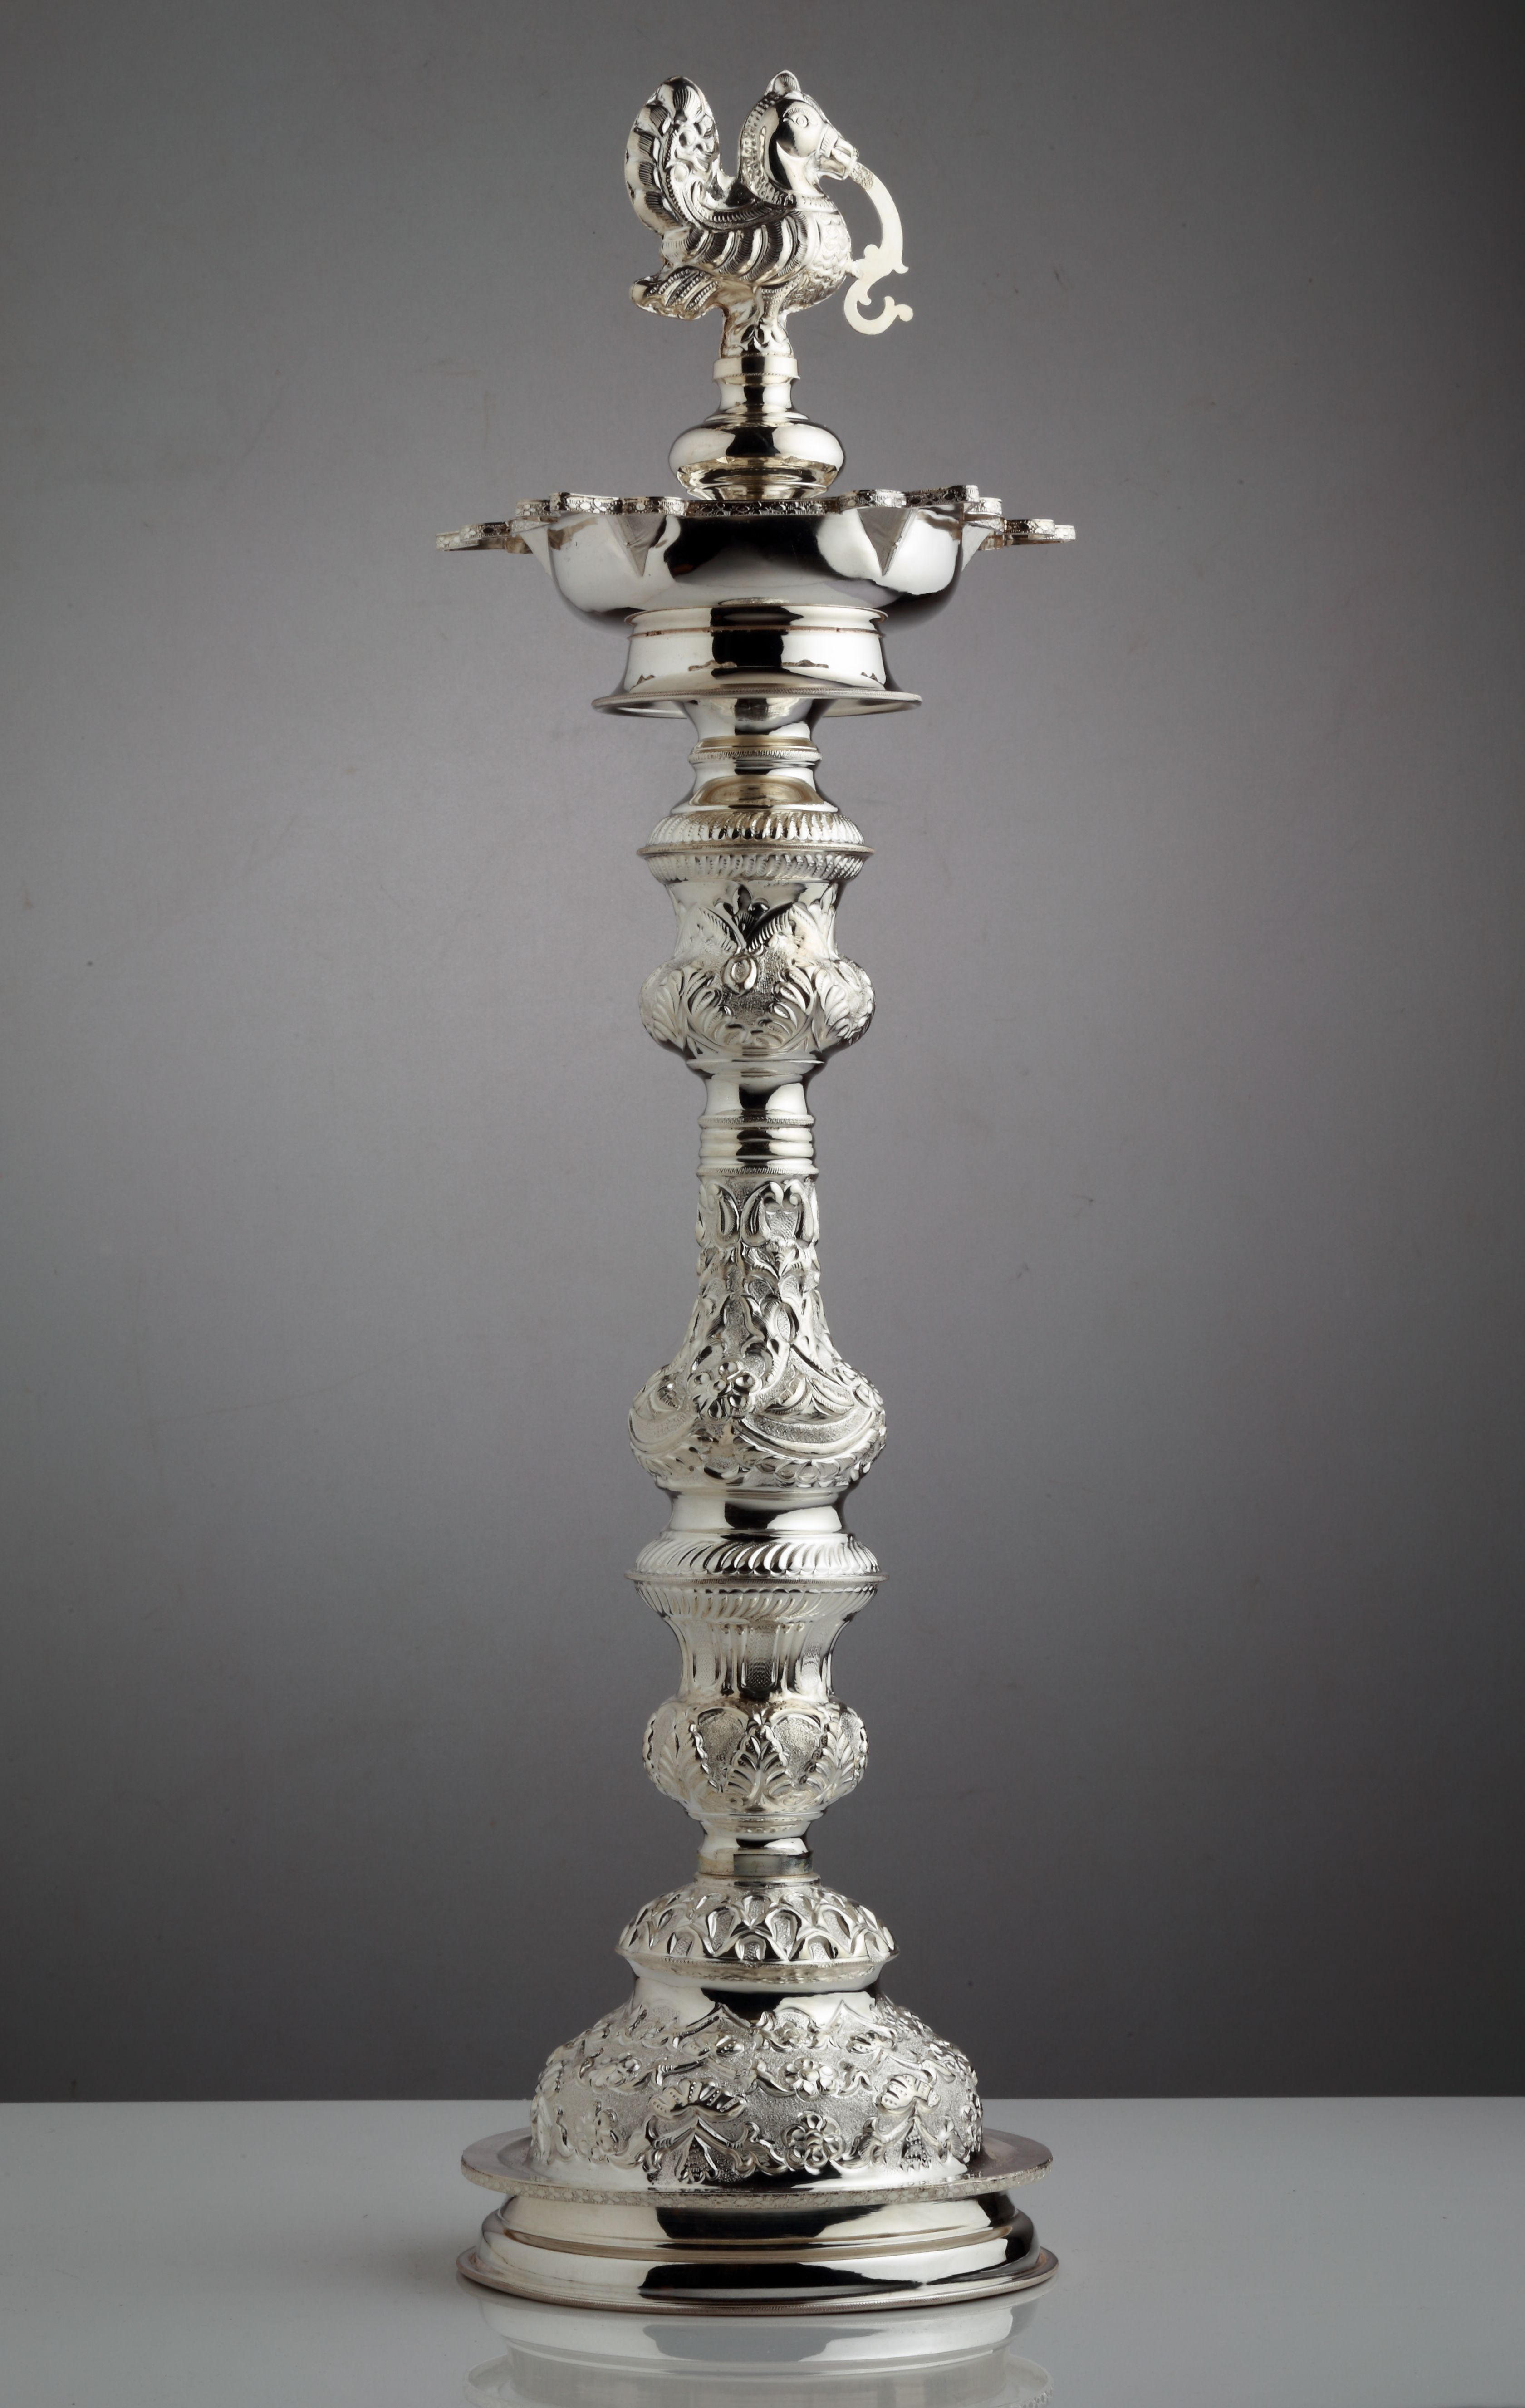 A Skillfully Crafted Silver Lamp Every Cloud Has A